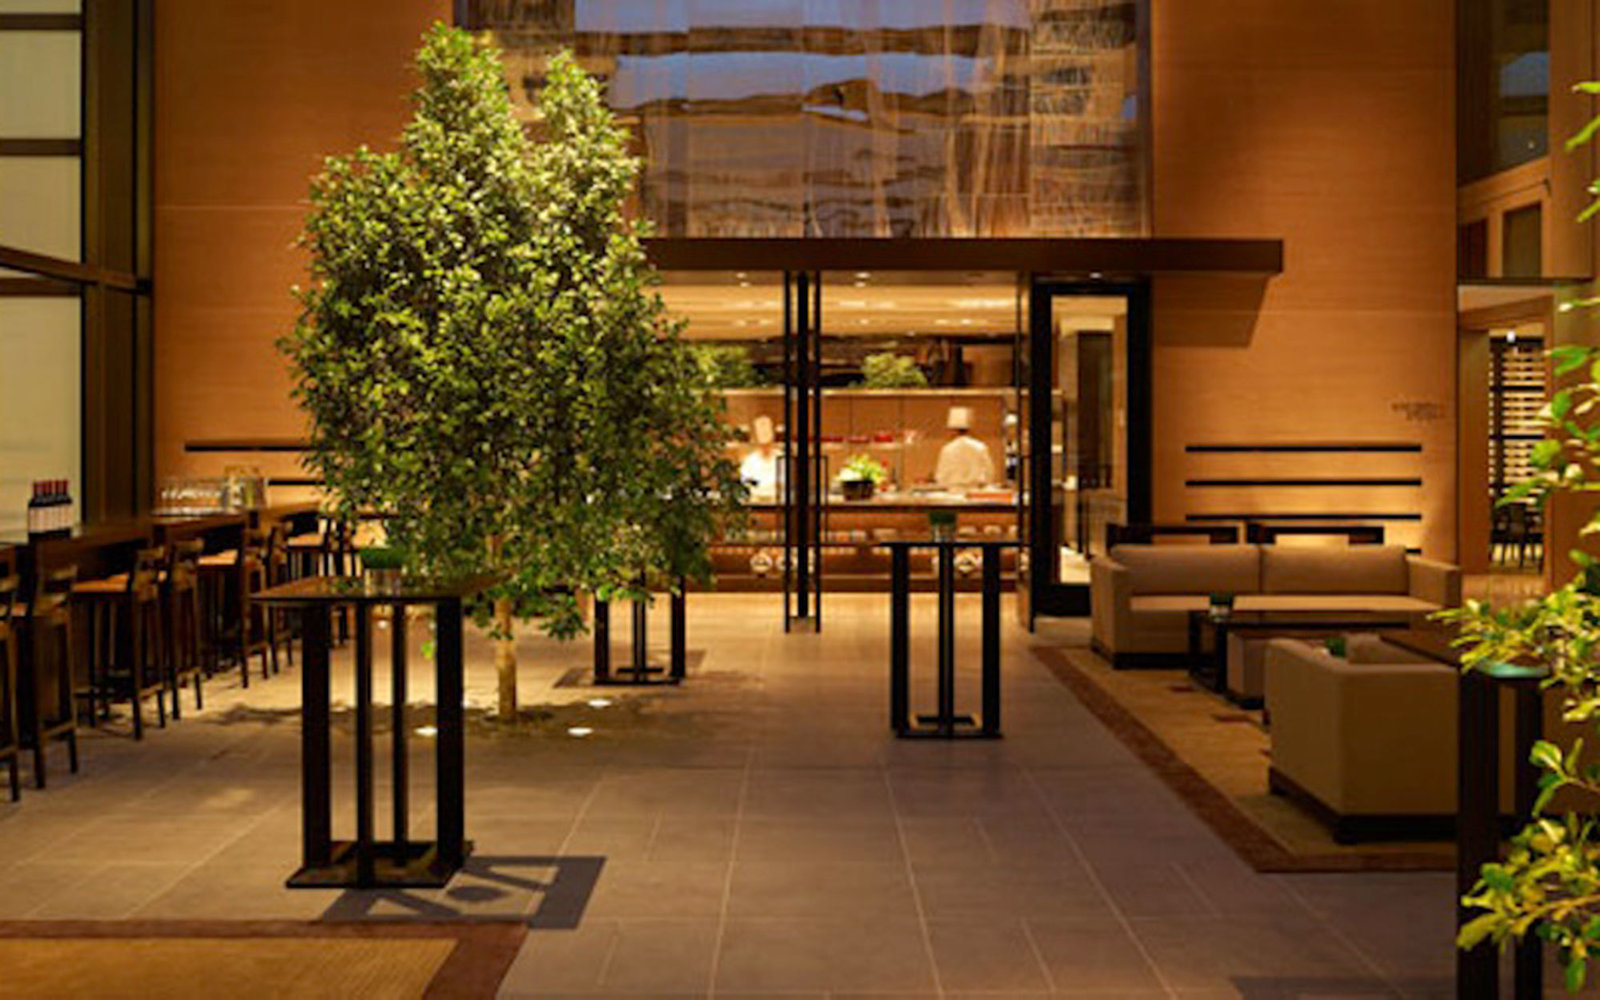 No. 3: Grand Hyatt Melbourne